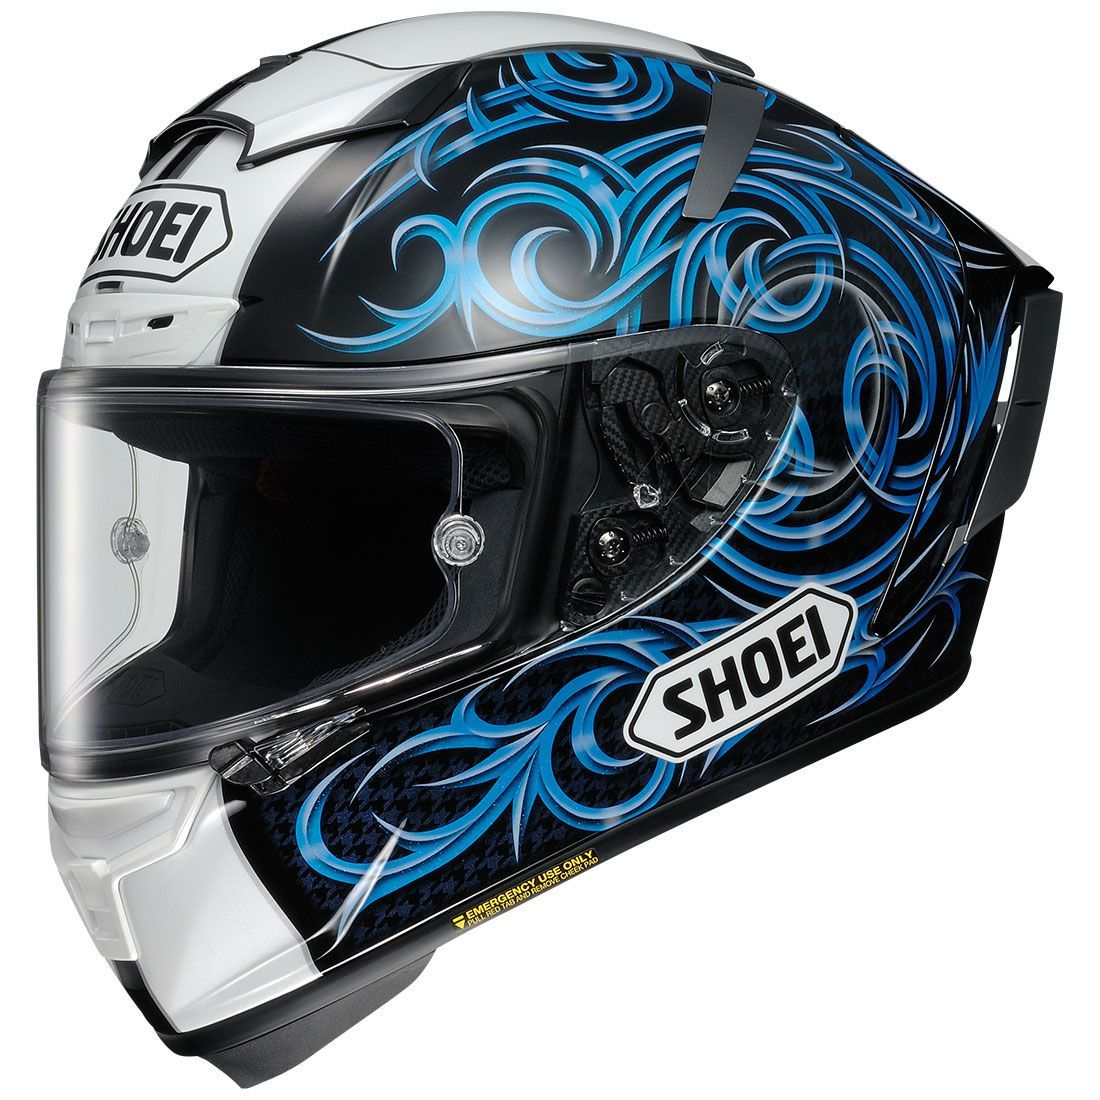 Shoei XFourteen Kagayama5 TC2 Blue motorcycle helmets